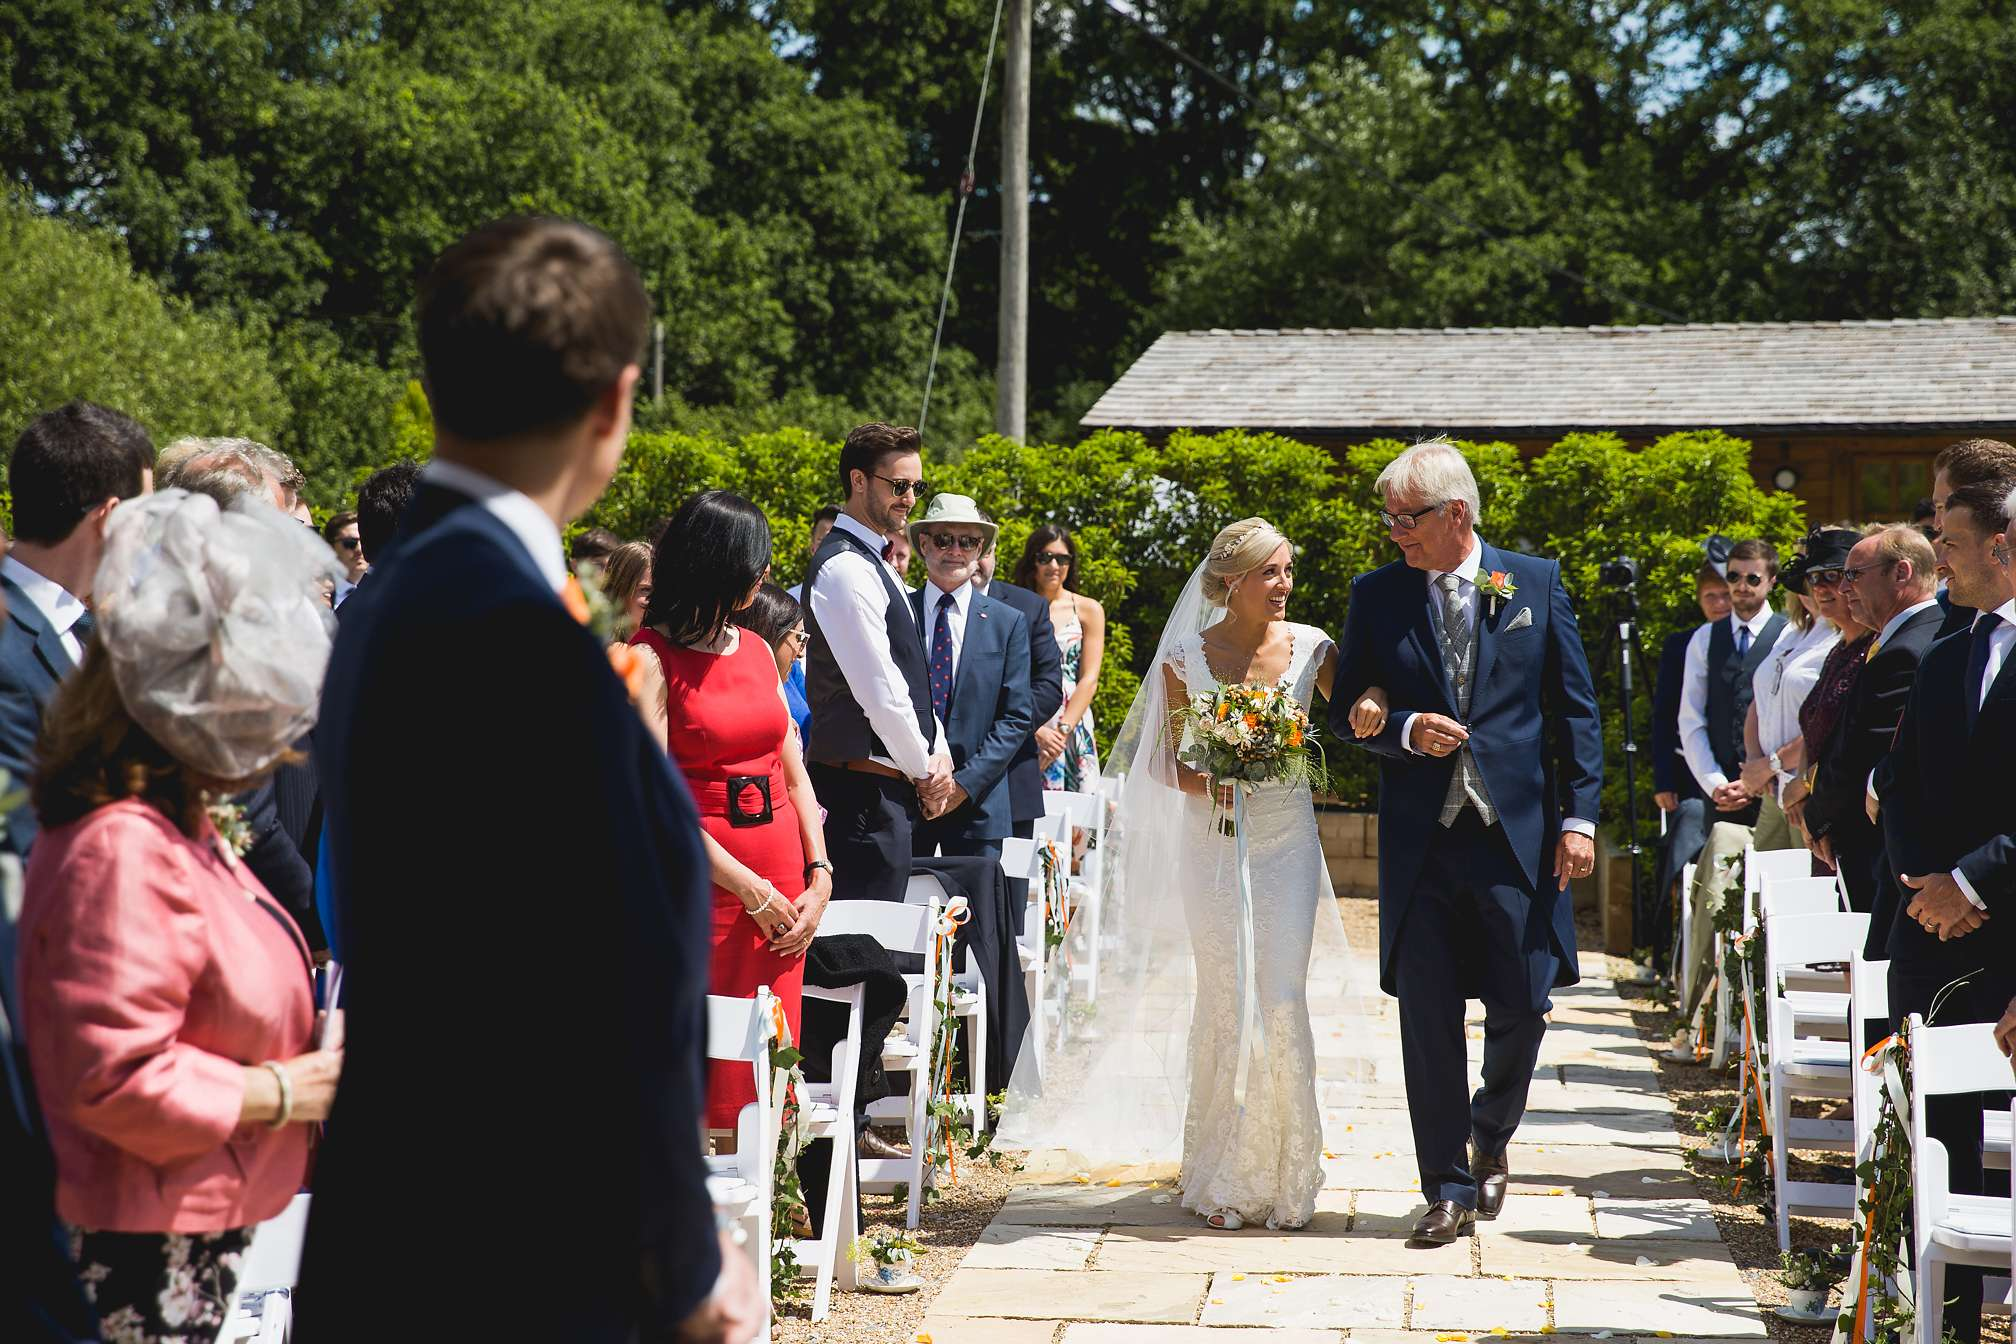 Jane and her dad haring a glance as they walk down the isle